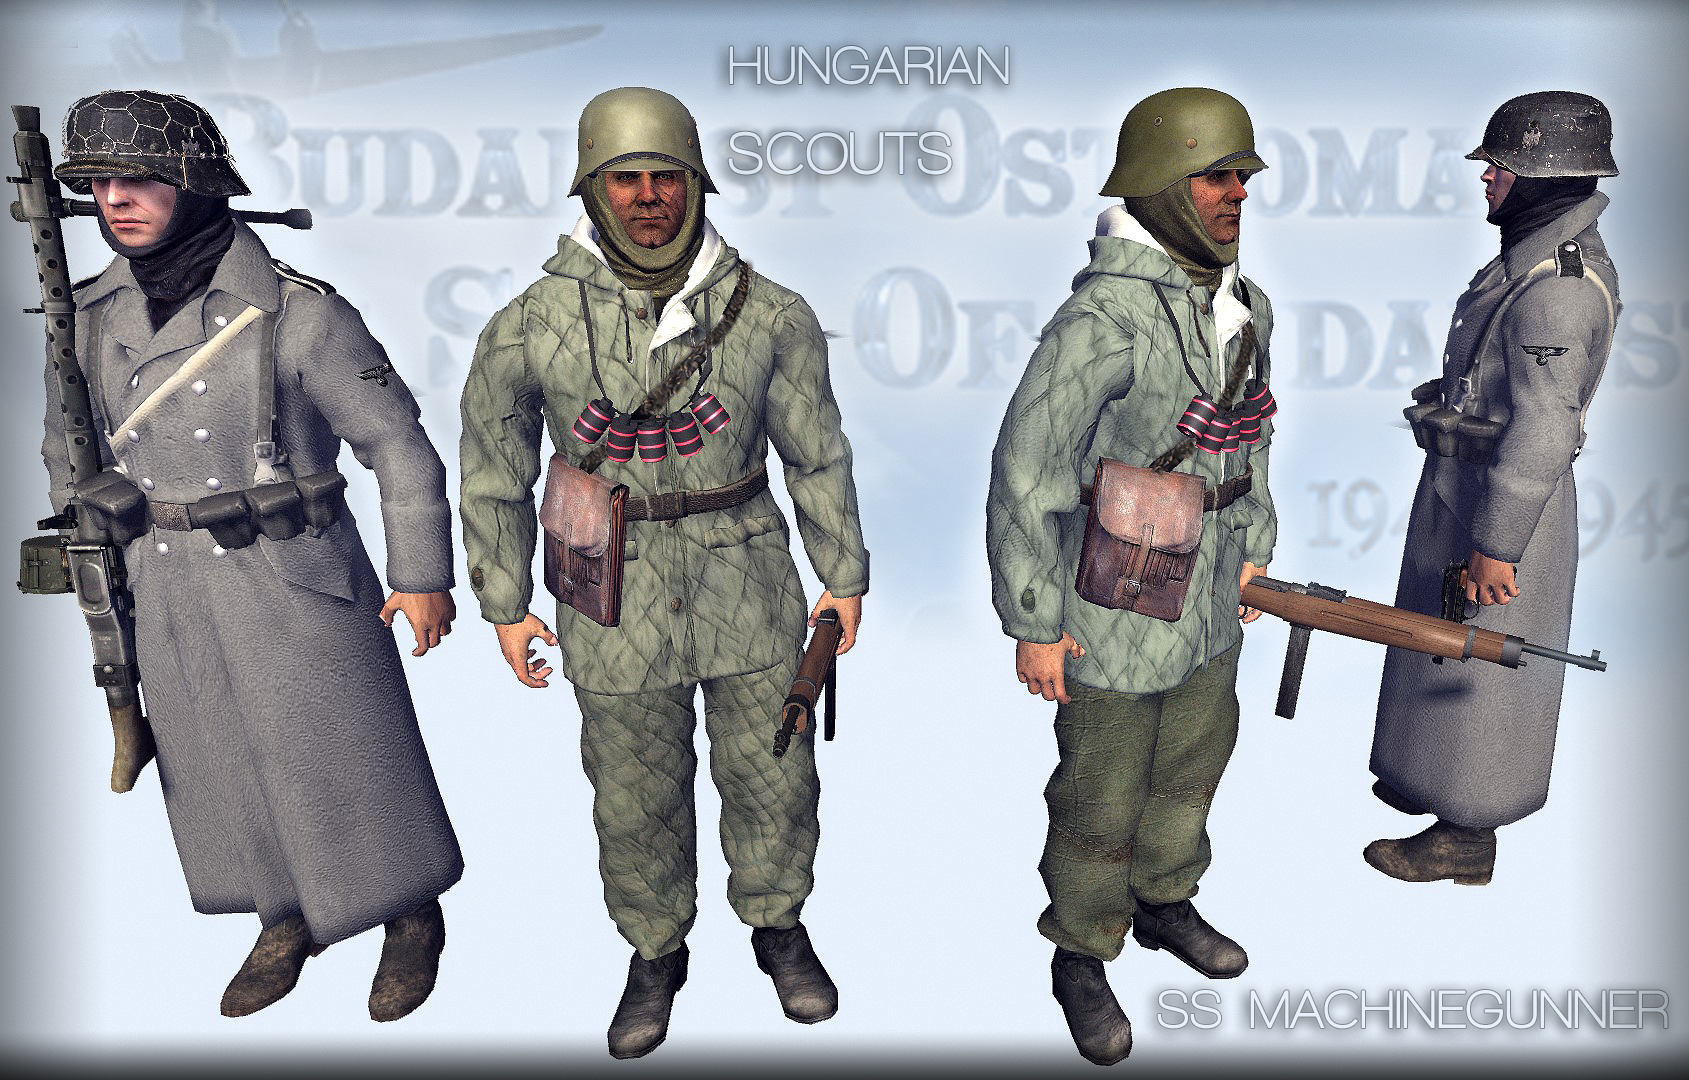 ss machine gunner  and hungarian men of war.